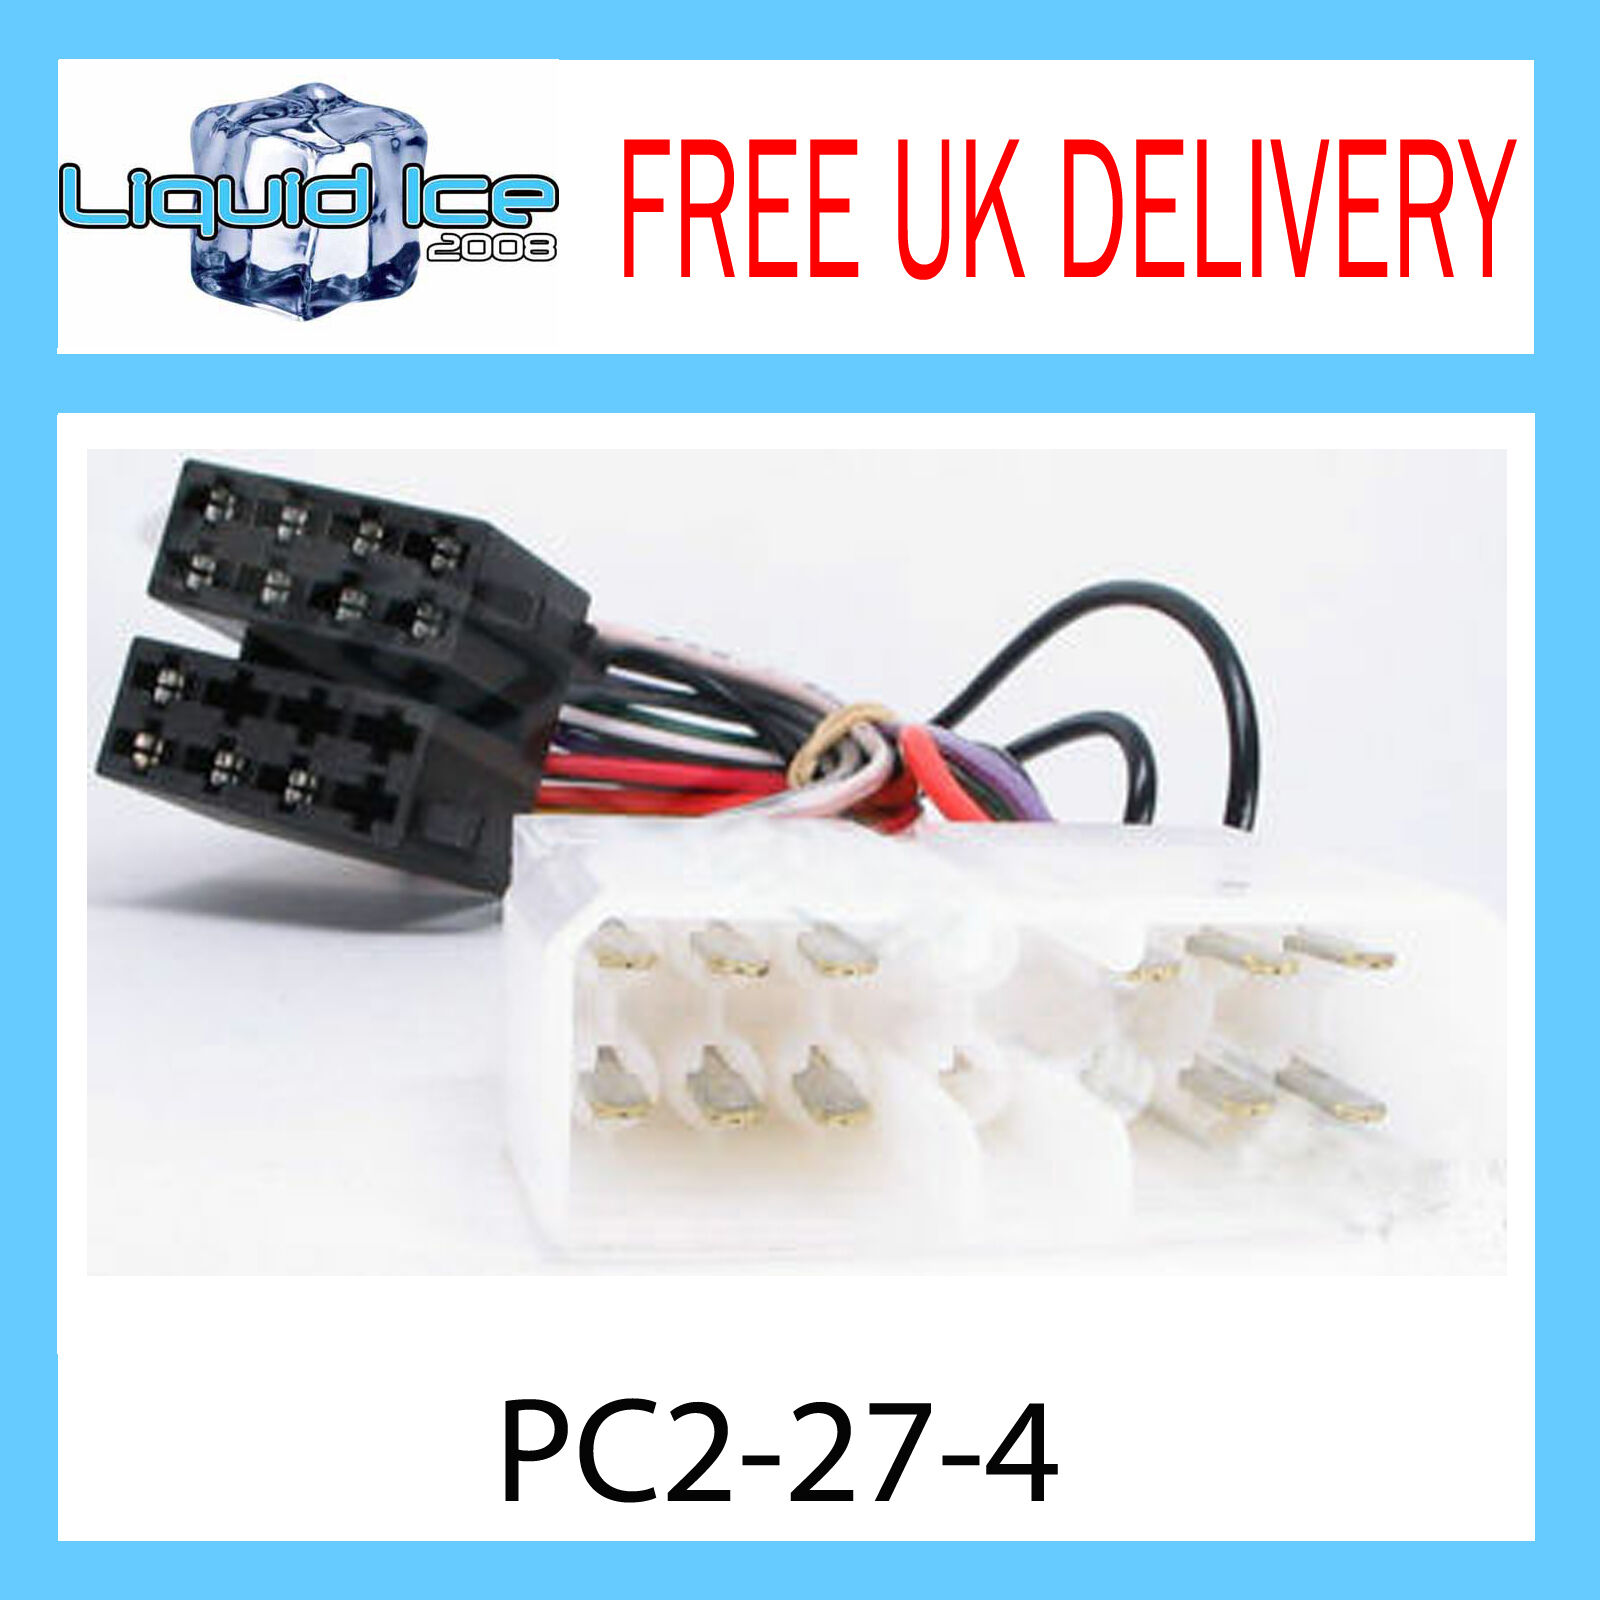 Details about ISUZU TROOPER 1987 - 1995 ISO STEREO HEAD UNIT HARNESS  ADAPTOR LEAD